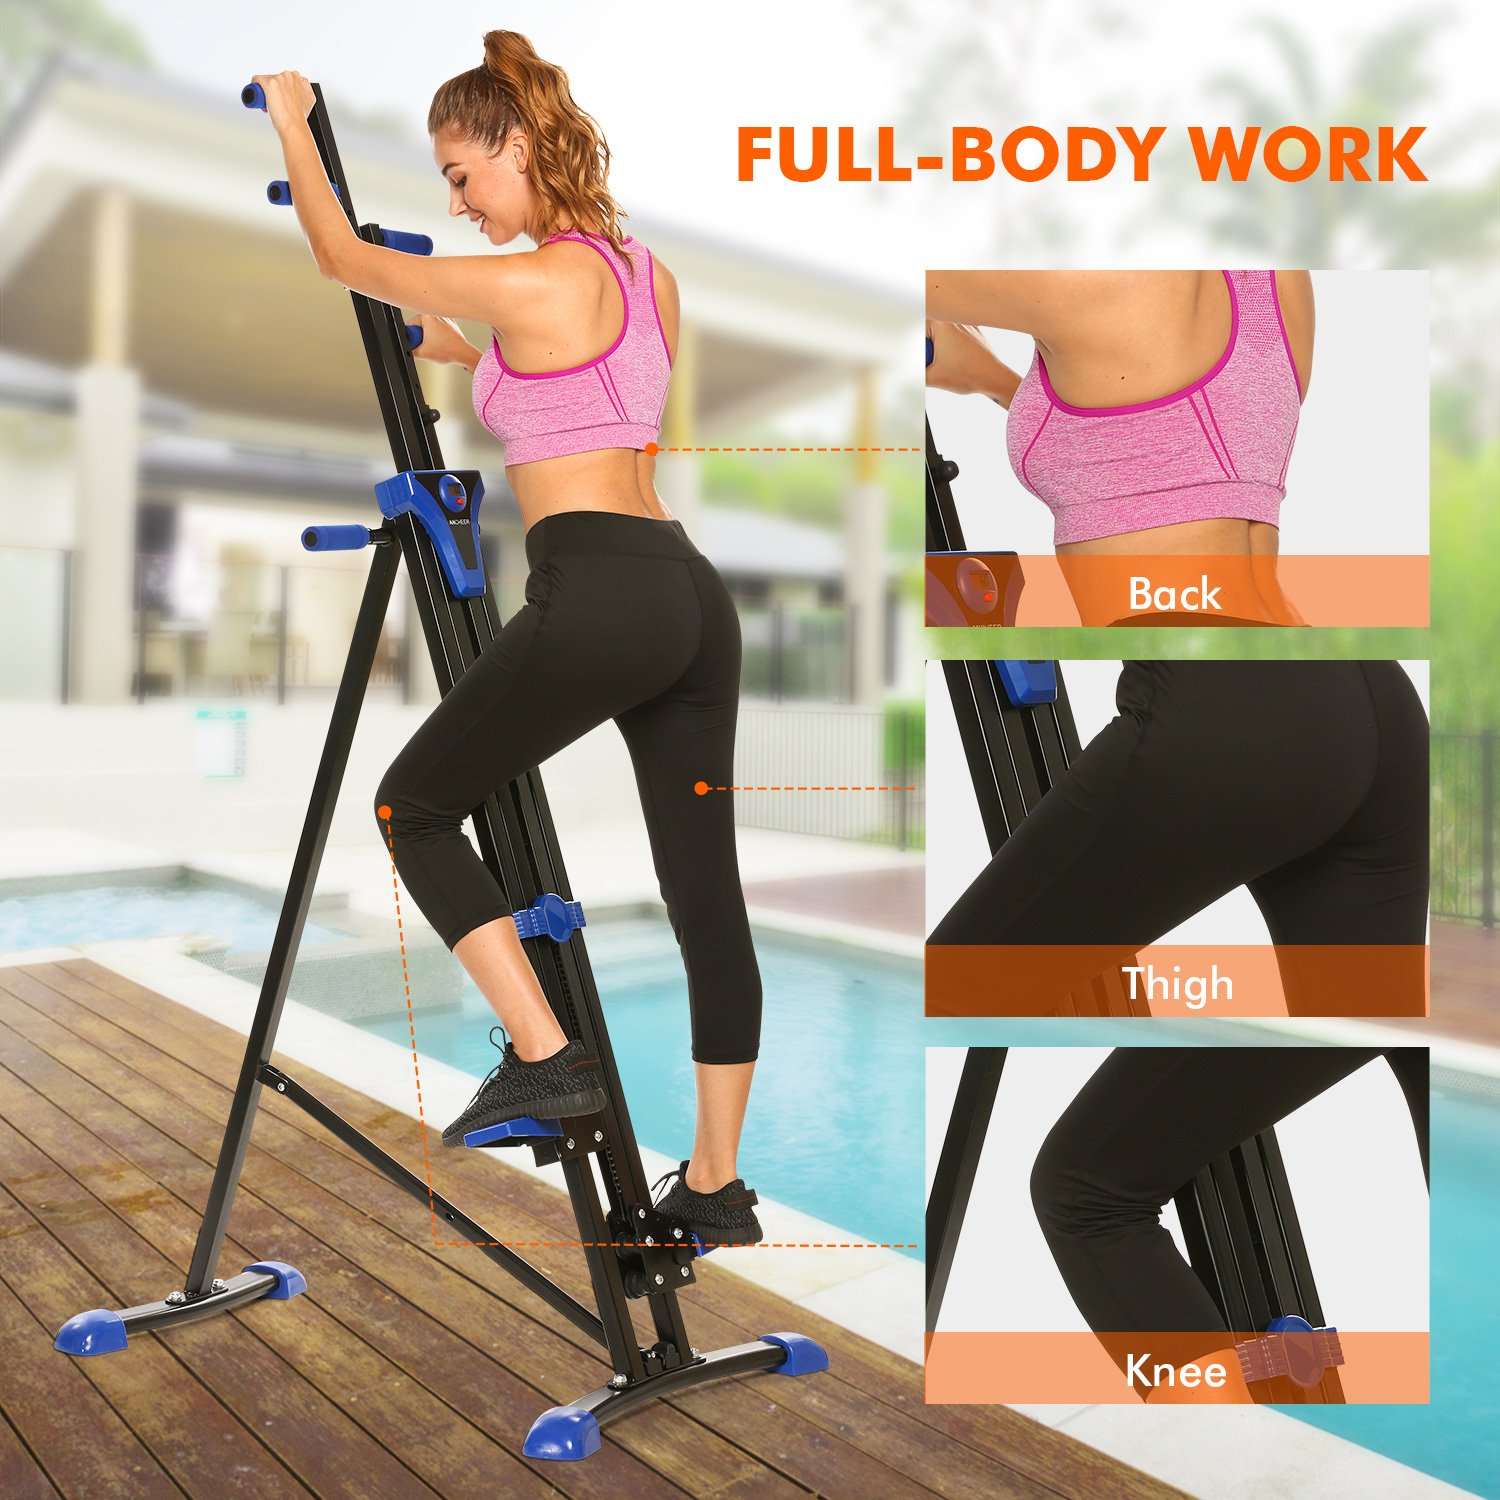 ANCHEER Vertical Climber Folding Exercise Climbing Machine, Exercise Equipment Climber for Home Gym, Exercise Bike for Home Body Trainer (Blue - only Climber) by ANCHEER (Image #4)